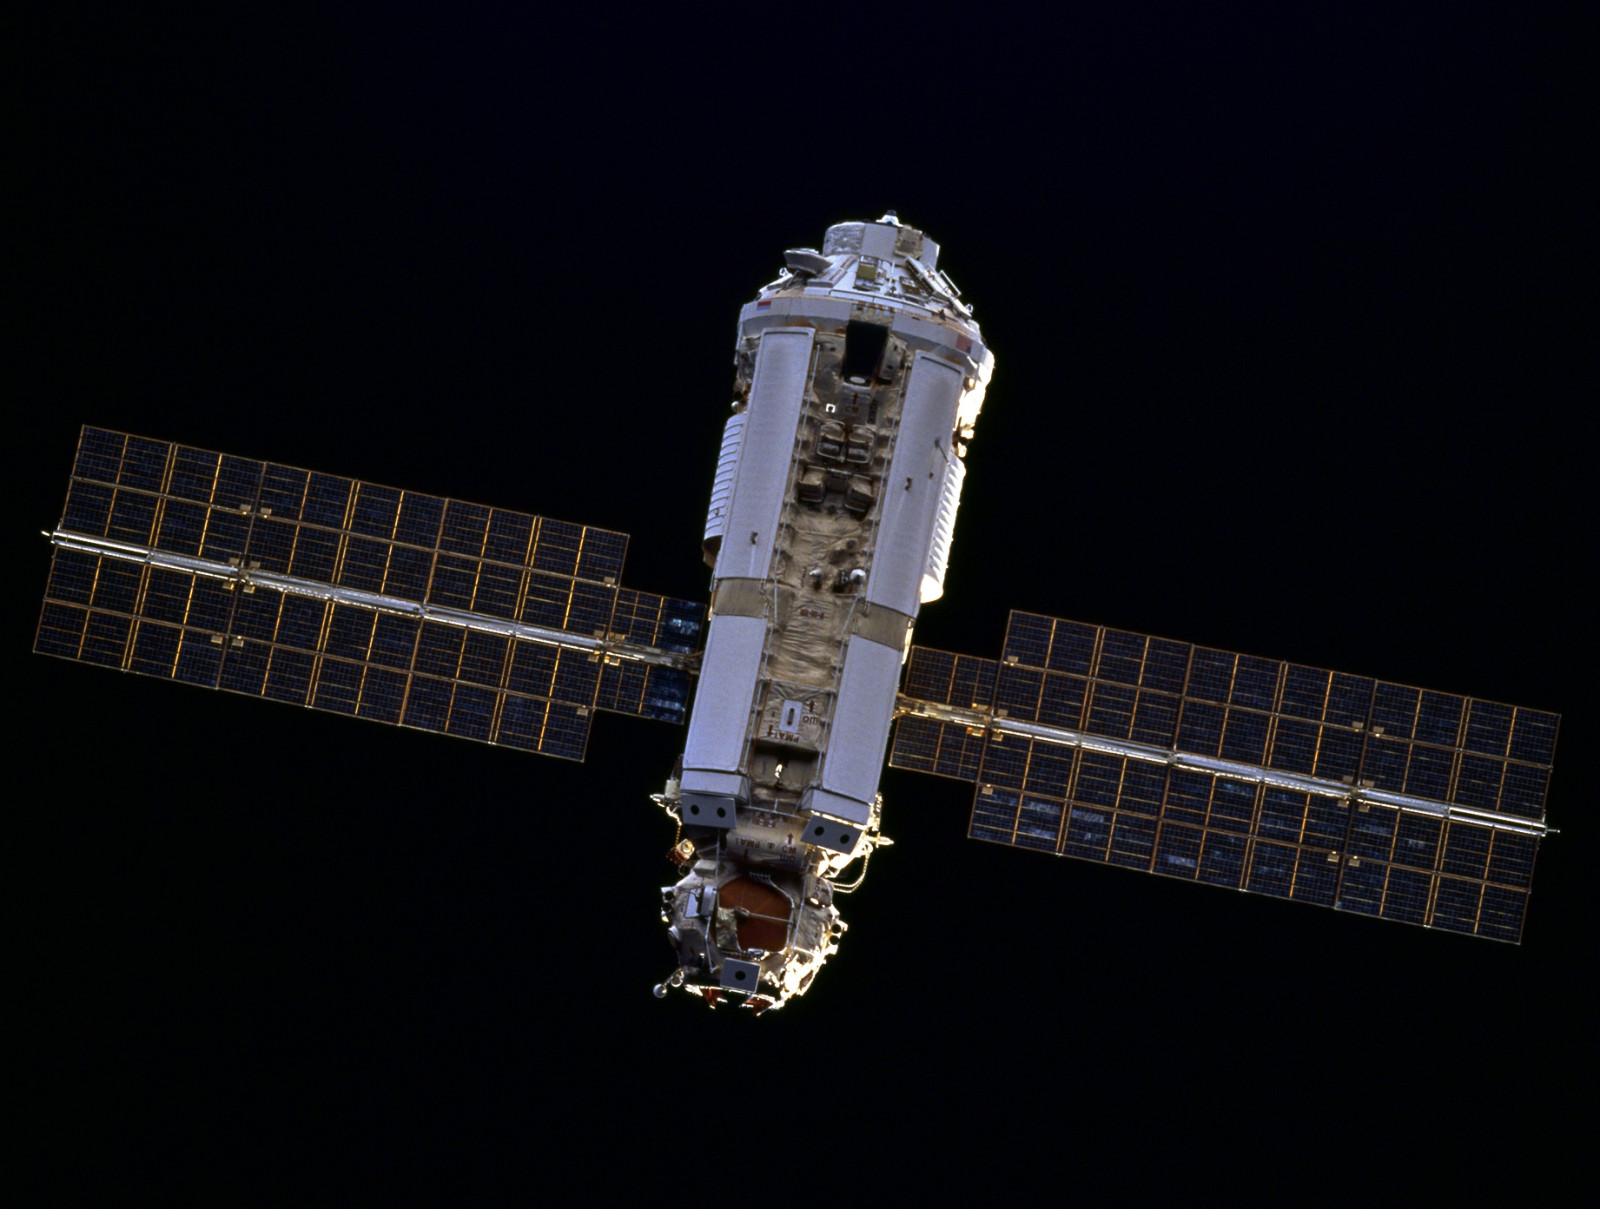 The Docking of Soyuz MS-03 occurred 18 years to the day after the launch of  Zarya , the first component of the football field-sized orbital complex. Photo Credit: NASA